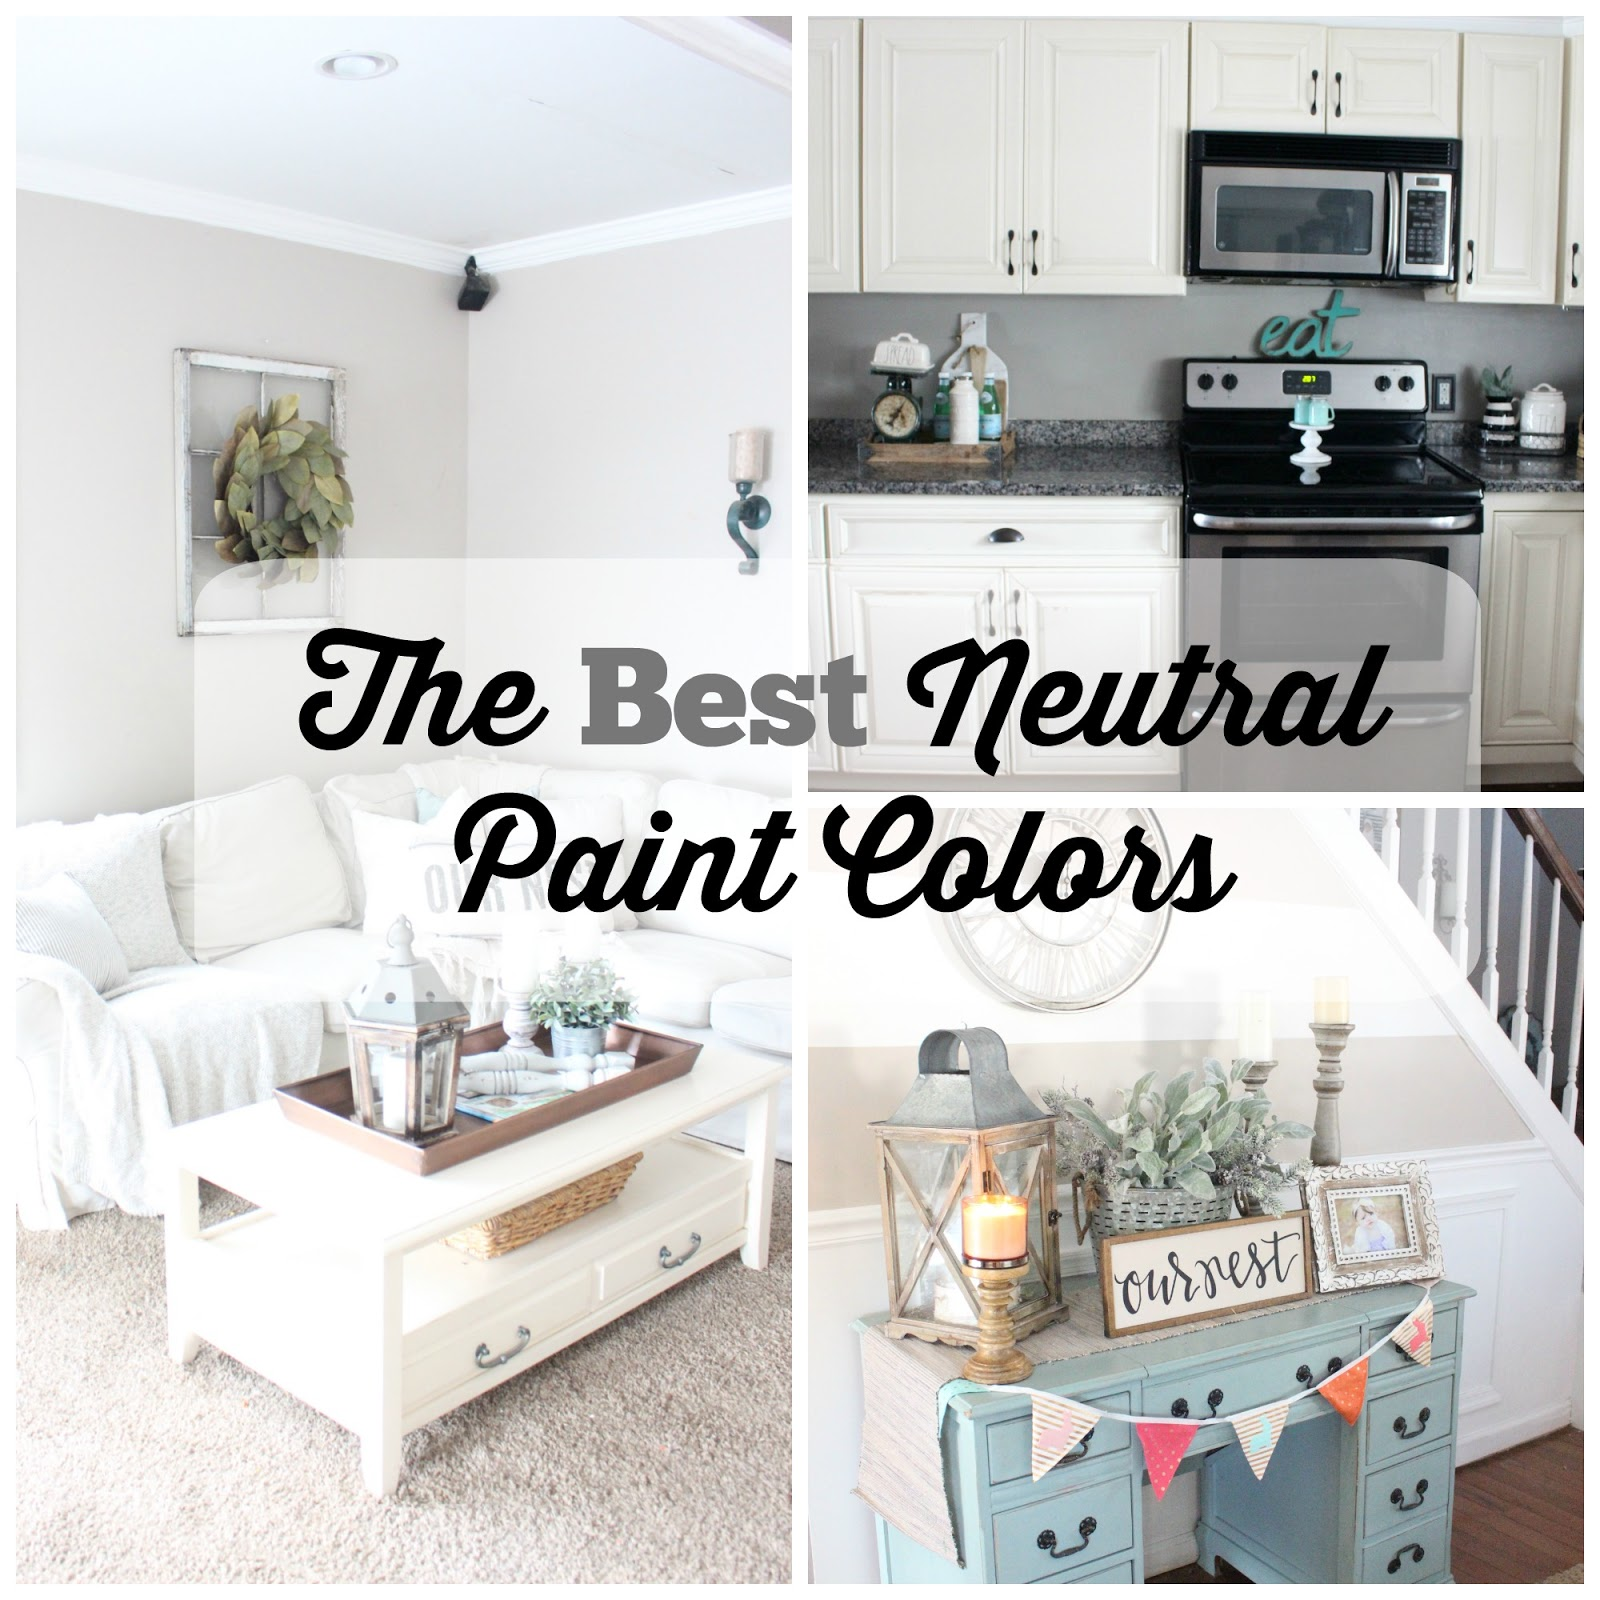 the best neutral paint colors the glam farmhouse